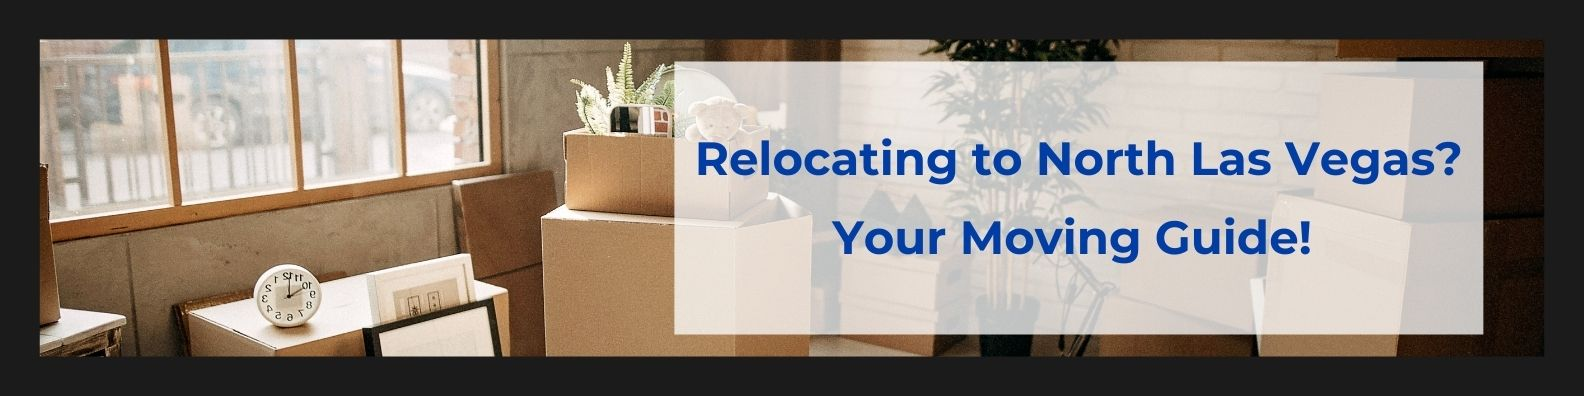 Relocating to North Las Vegas Your Moving Guide!